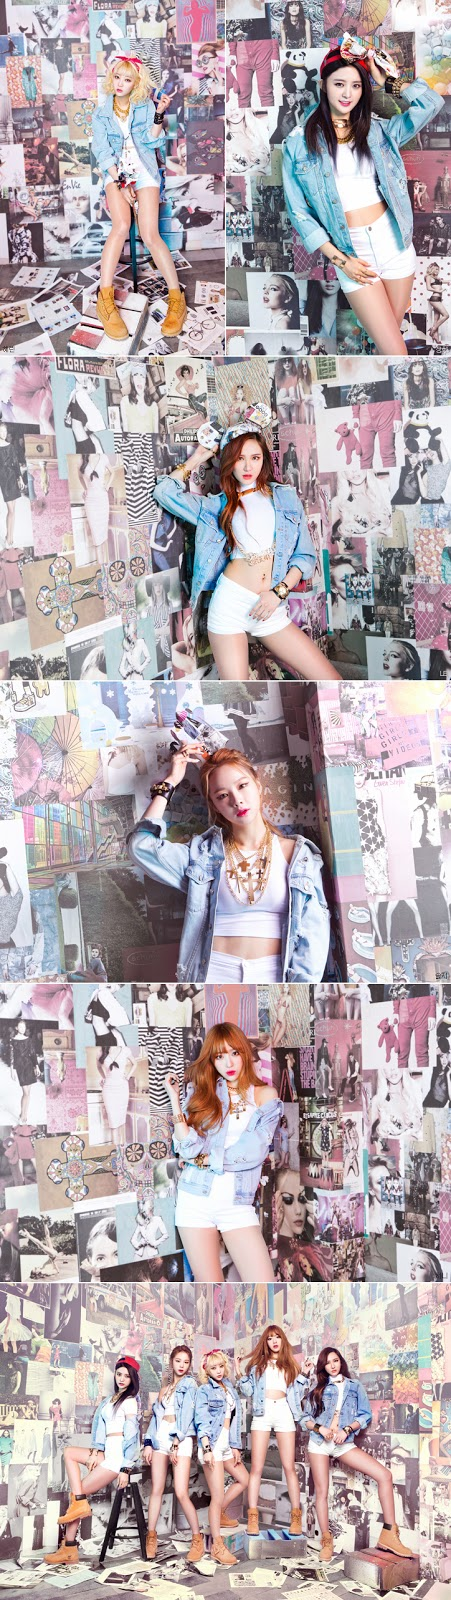 Enjoy Korea EXID Ah Yeah MV EXID Ah Yeah teaser EXID Ah Yeah Music video EXID Ah Yeah photo exid un&down Girls Generation Hani Hui hyelin Junghwa K pop K-pop Solji LE EXID Ah Yeah lyrics